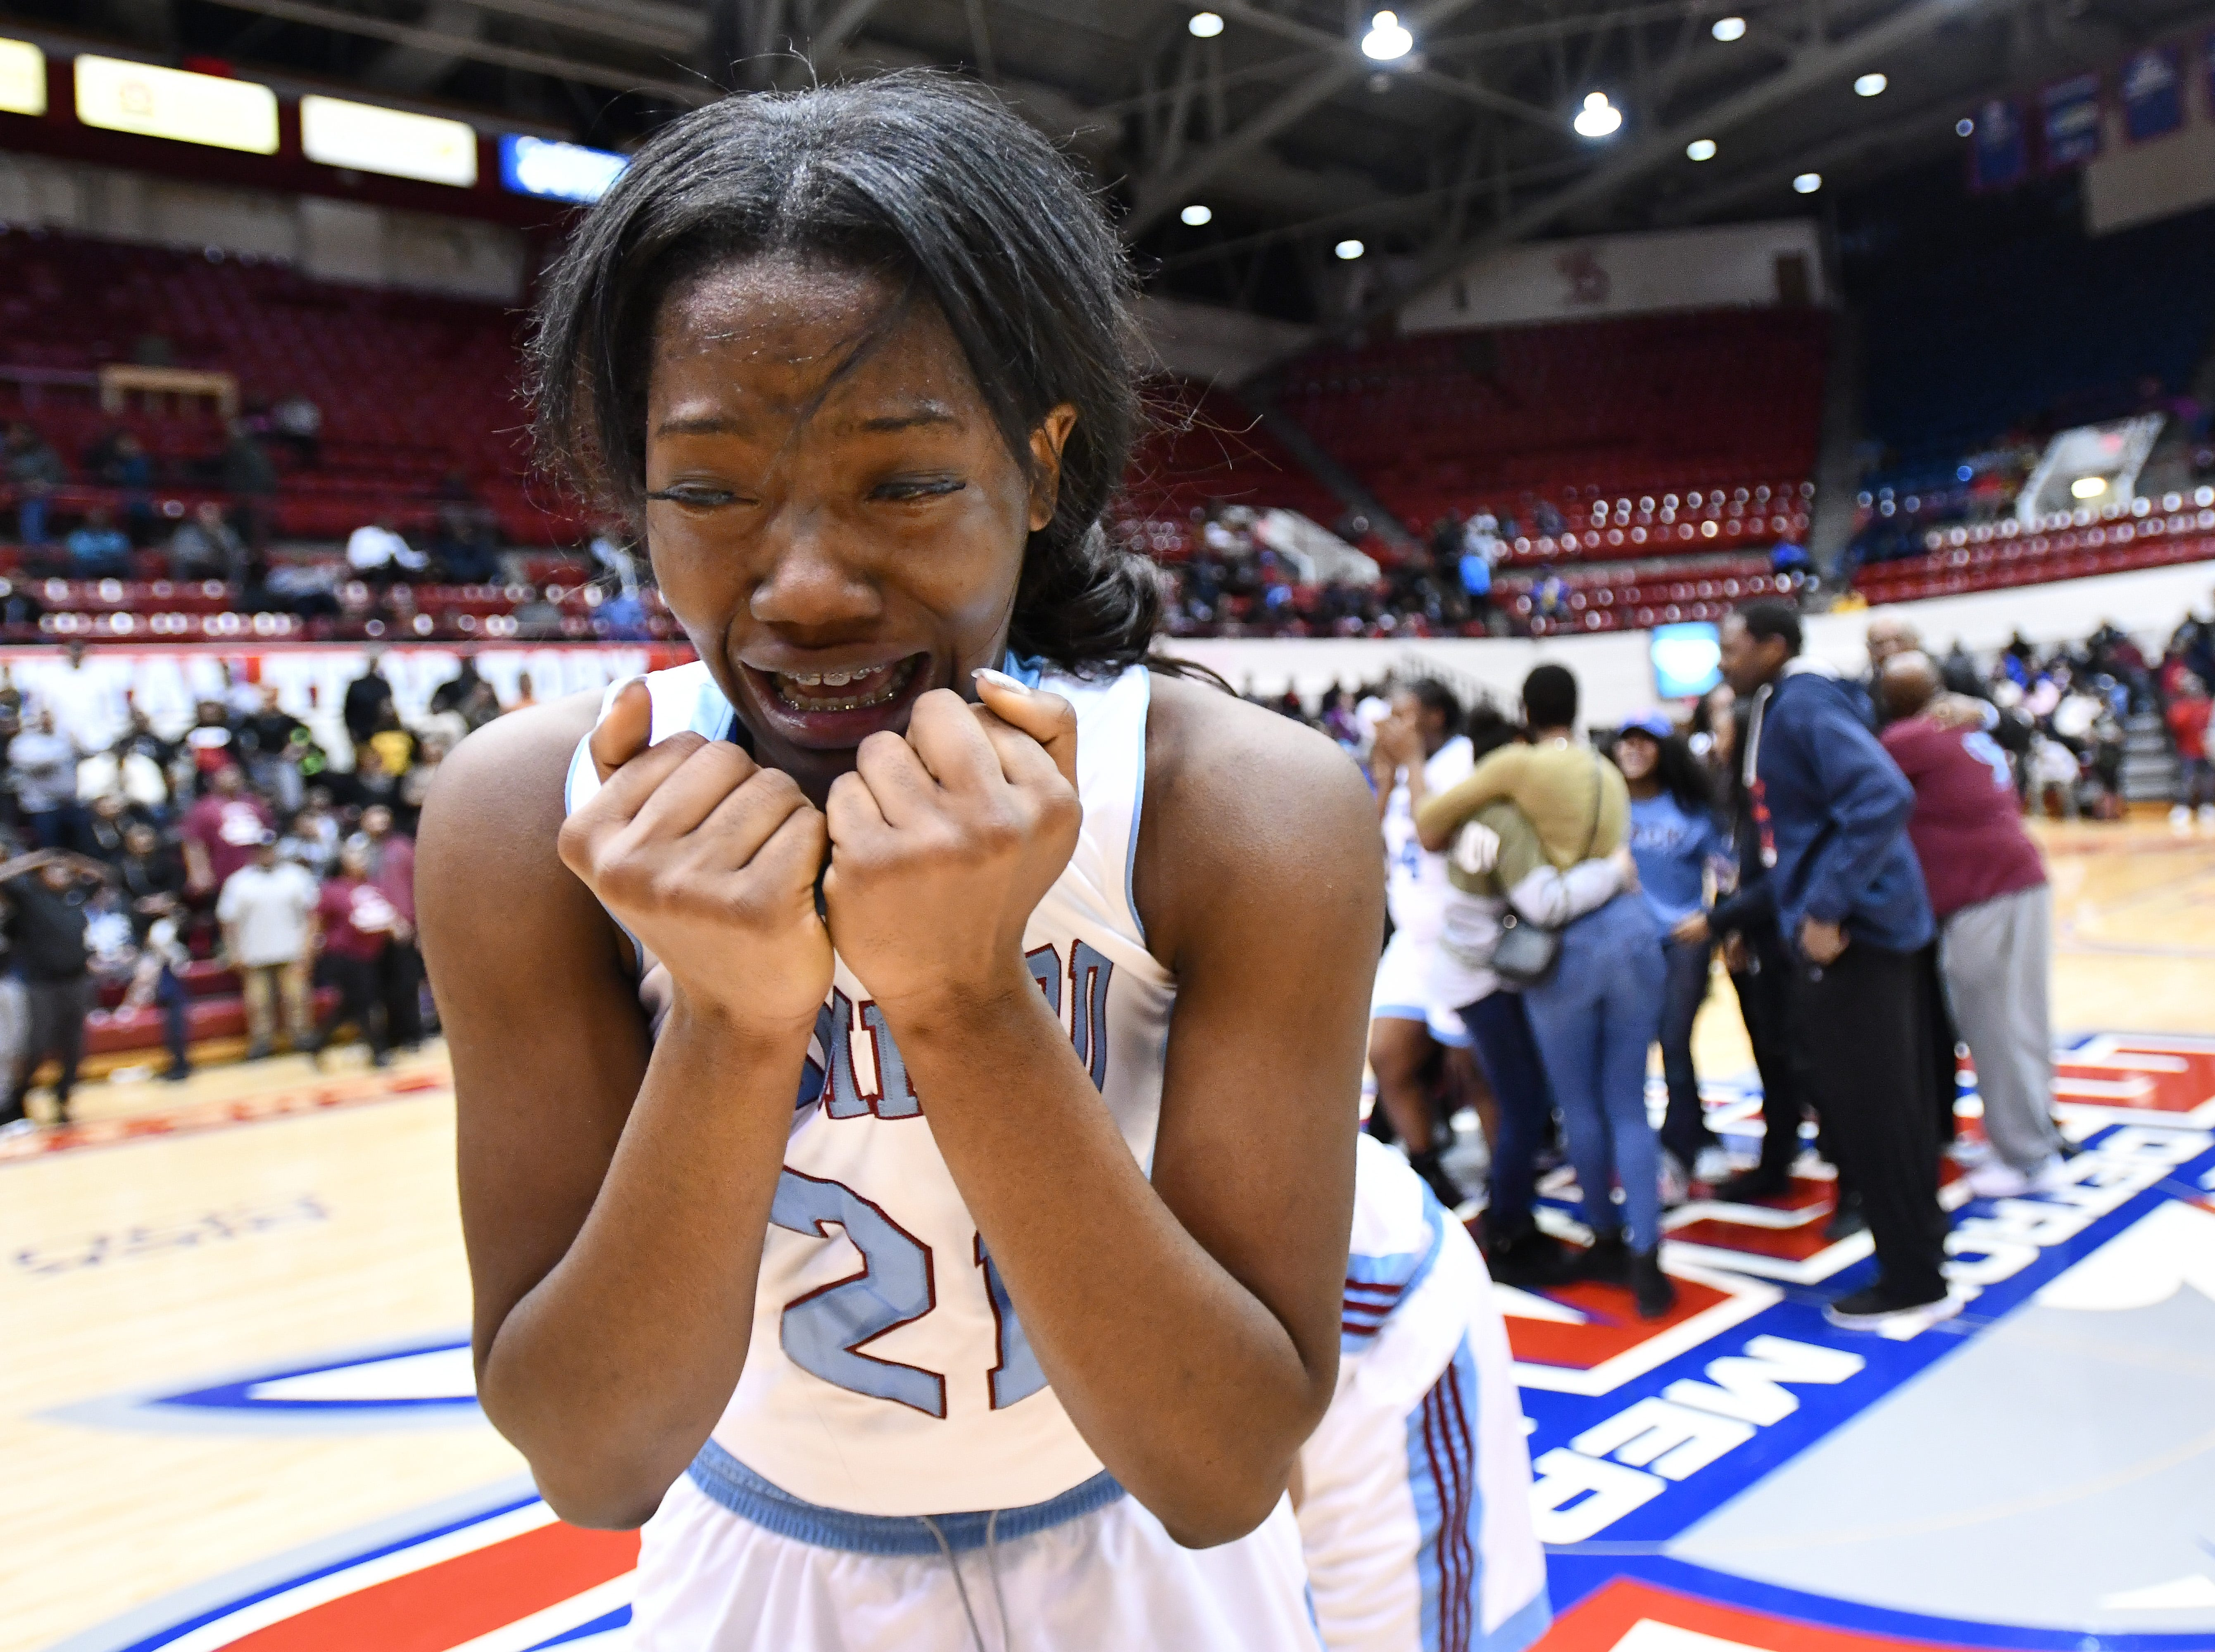 Mumford High School basketball player Zamaria Polk is overcome with emotion as the celebration begins after Mumford's 60-58 championship victory over Renaissance High School for the school's first Detroit Public School League title at Calihan Hall on the campus of the University of Detroit Mercy on February 16, 2018.